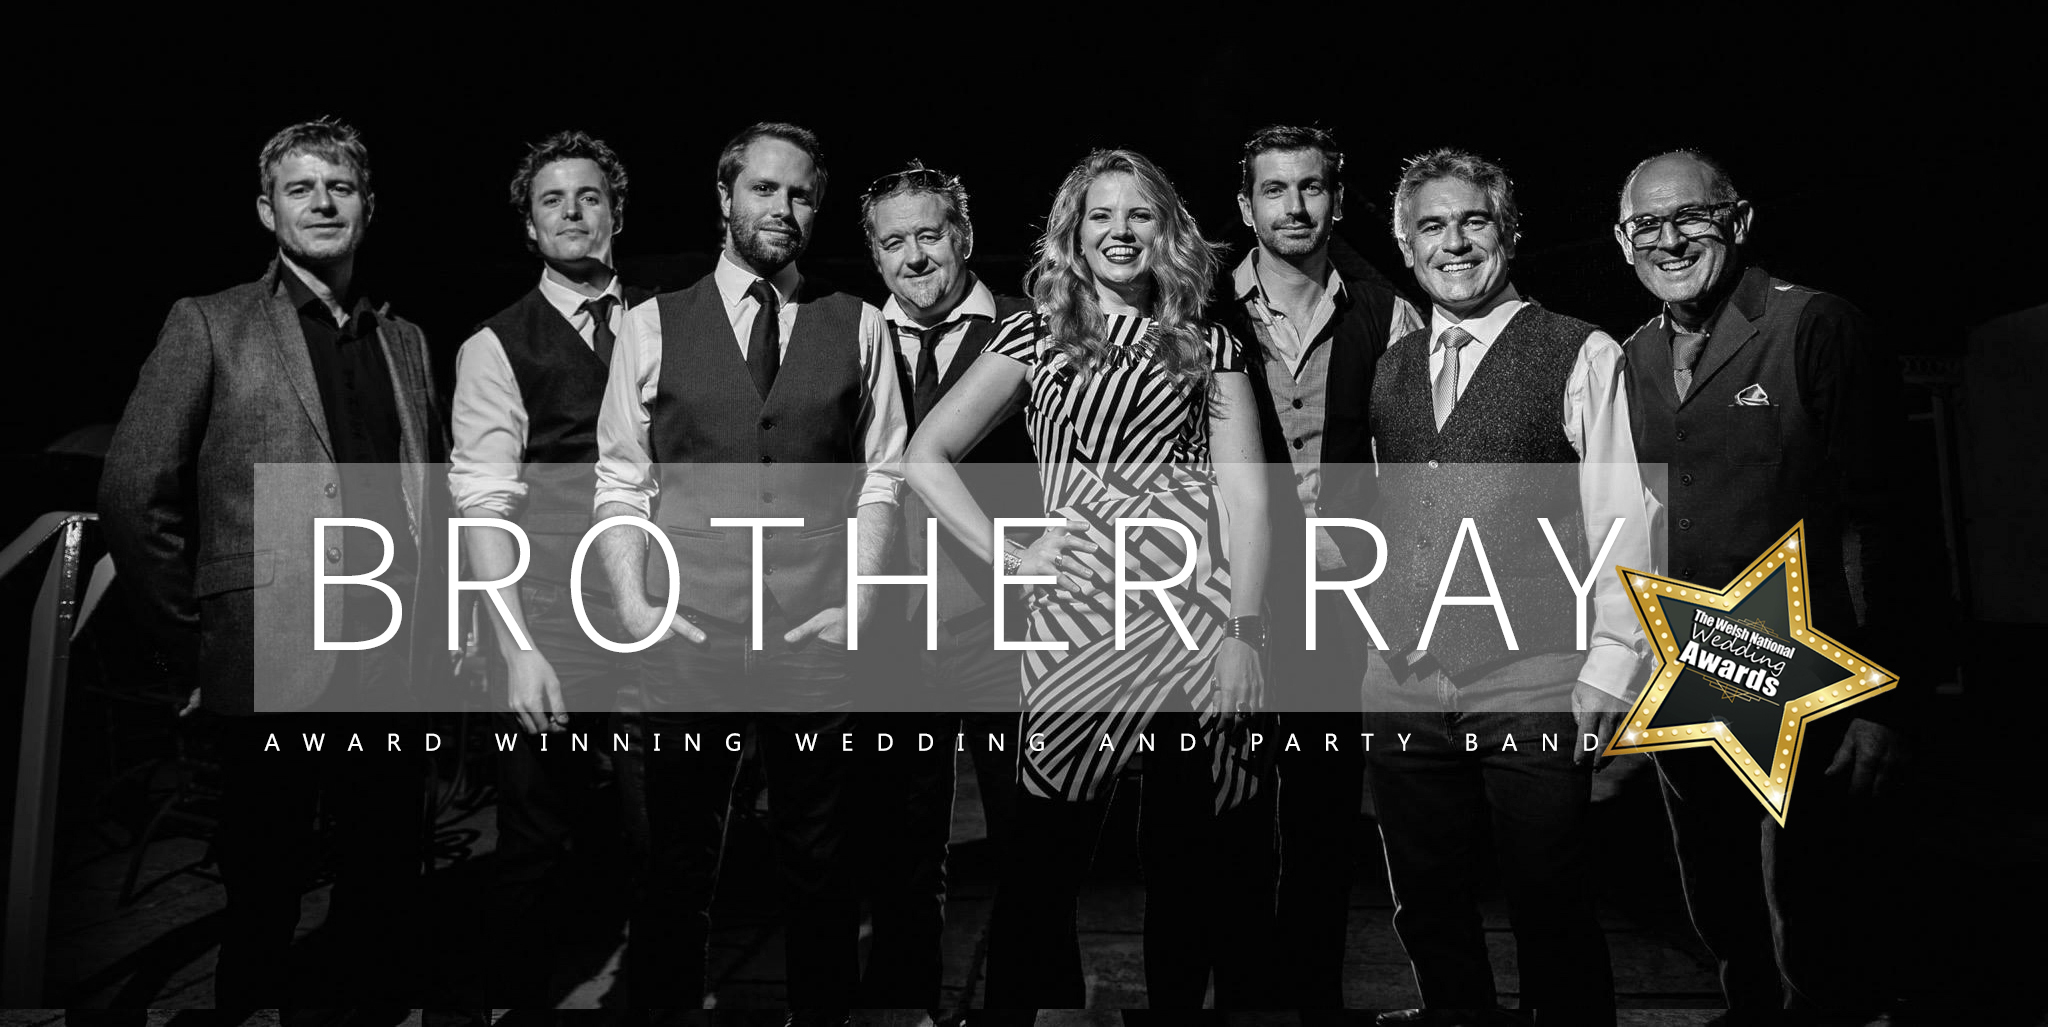 Wedding Bands South Wales – Brother Ray